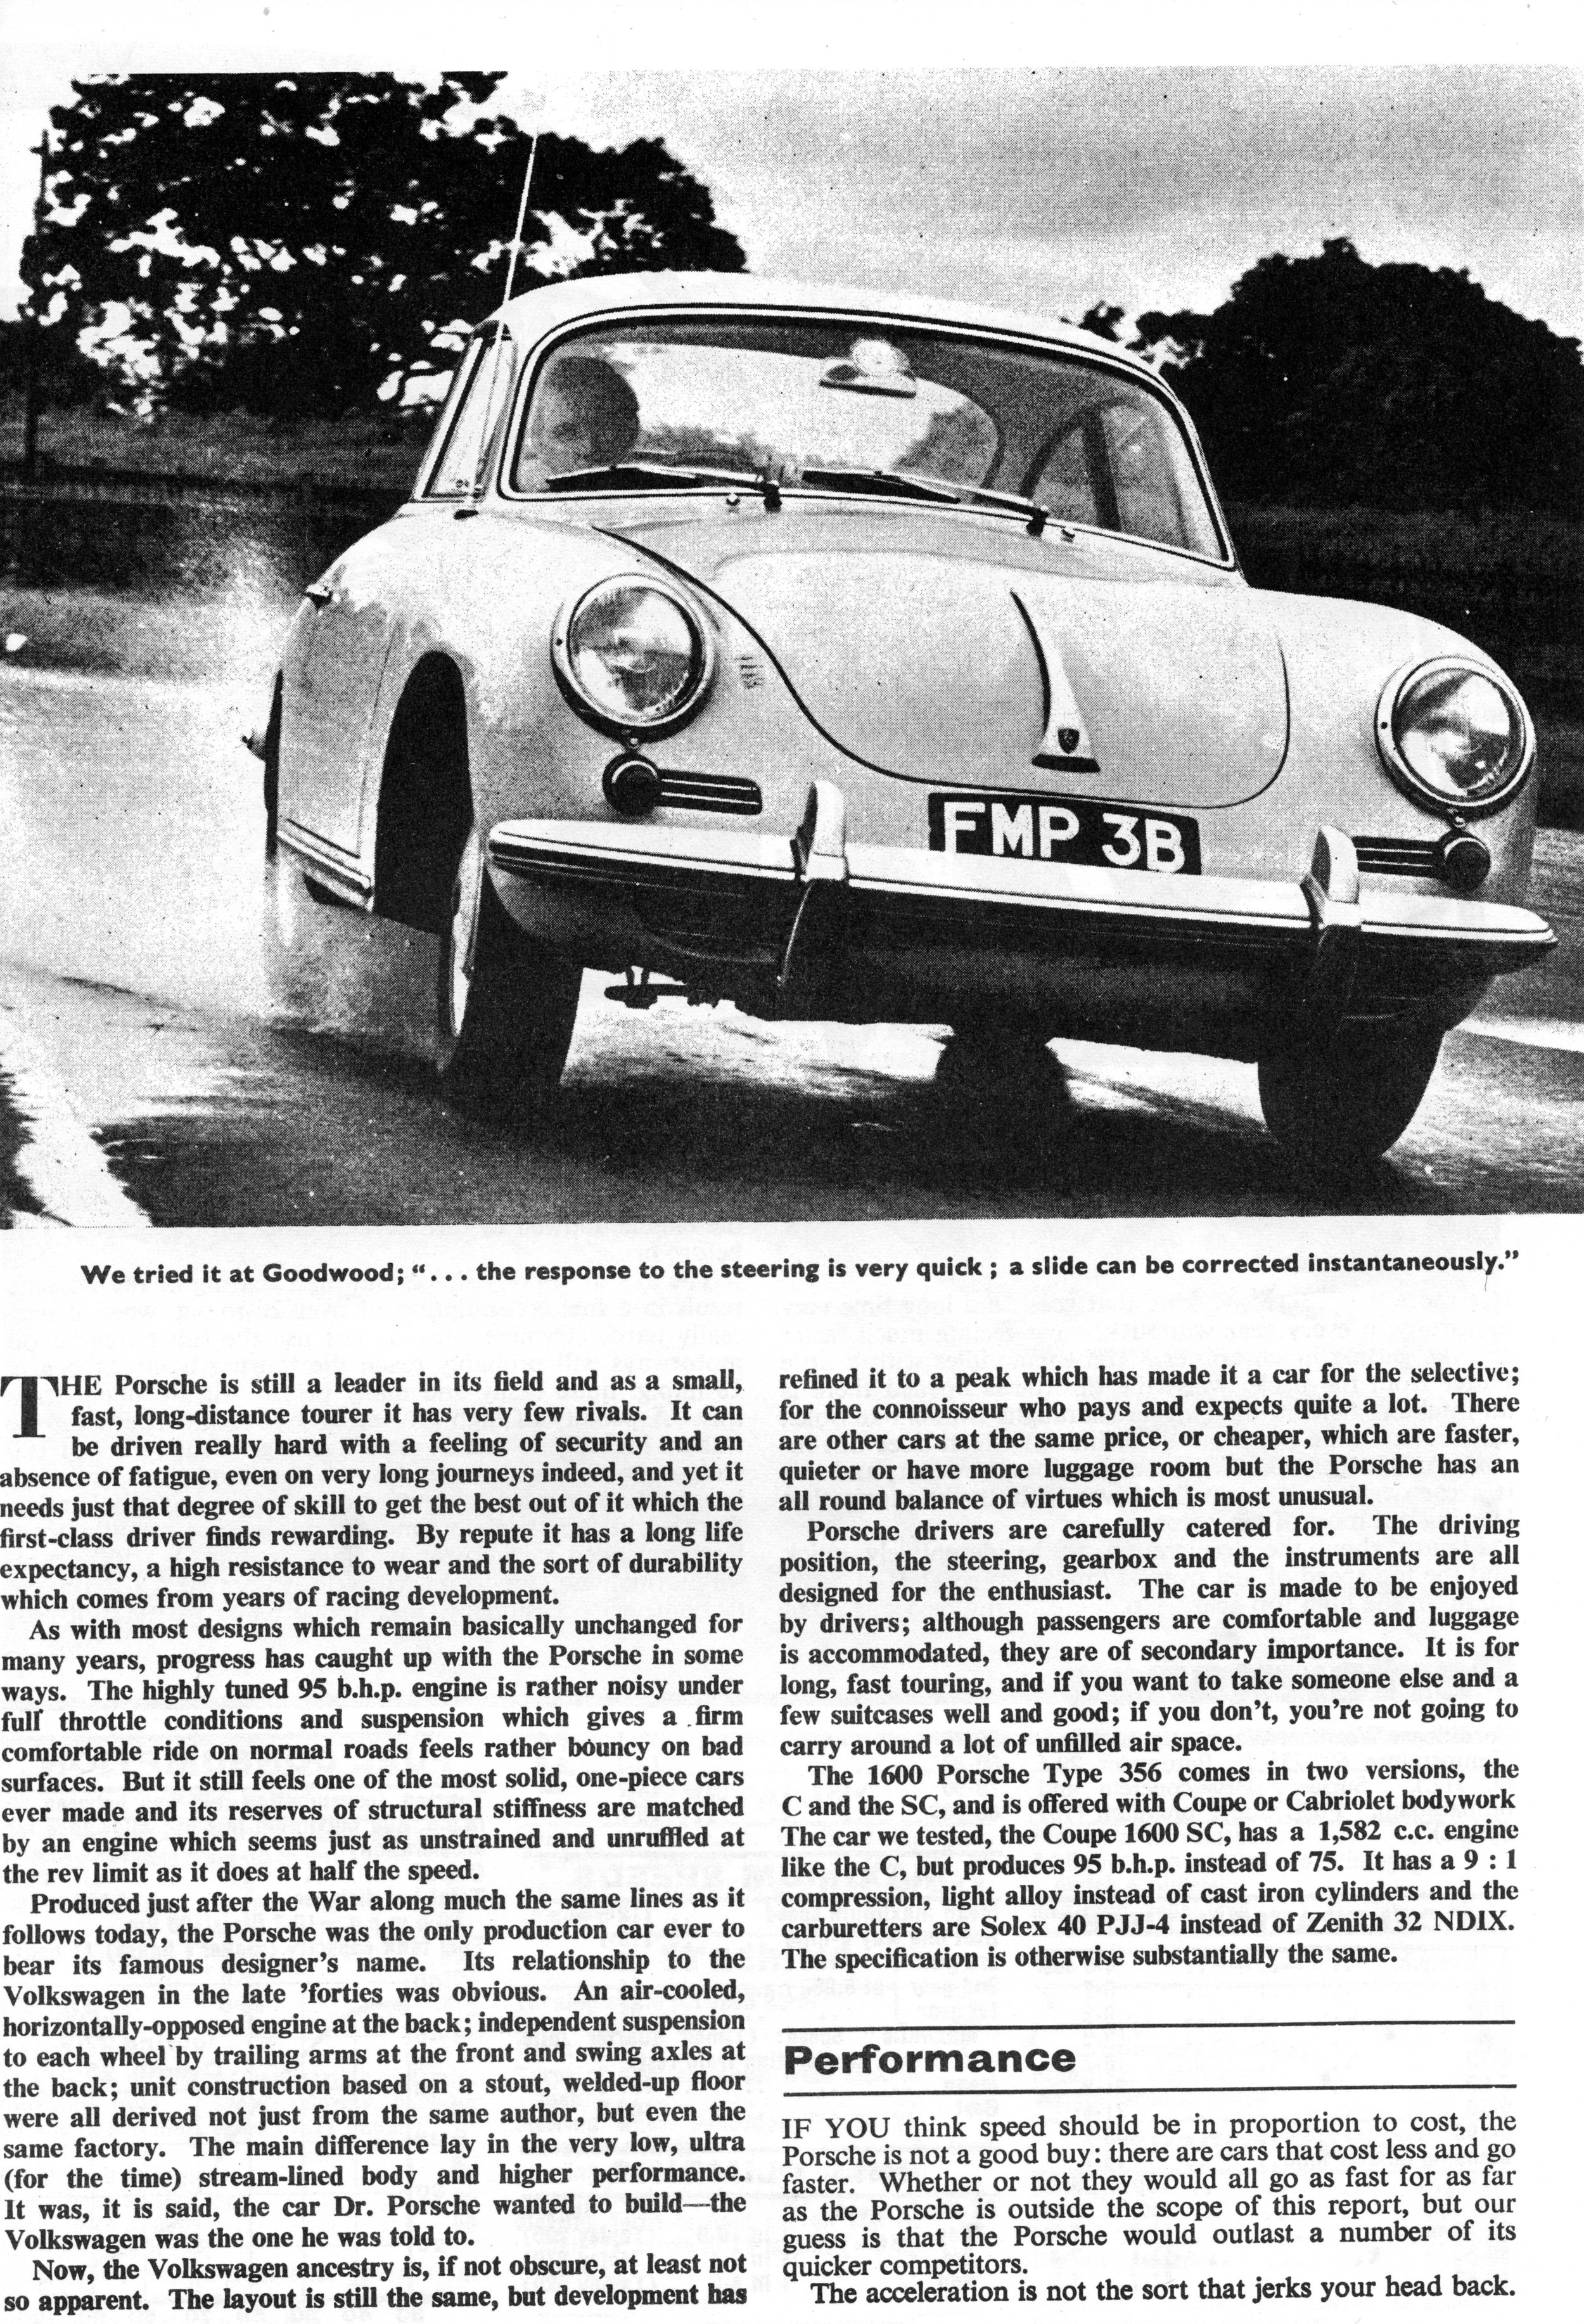 The author road tests a Porsche 1600SC for The Motor in 1964.